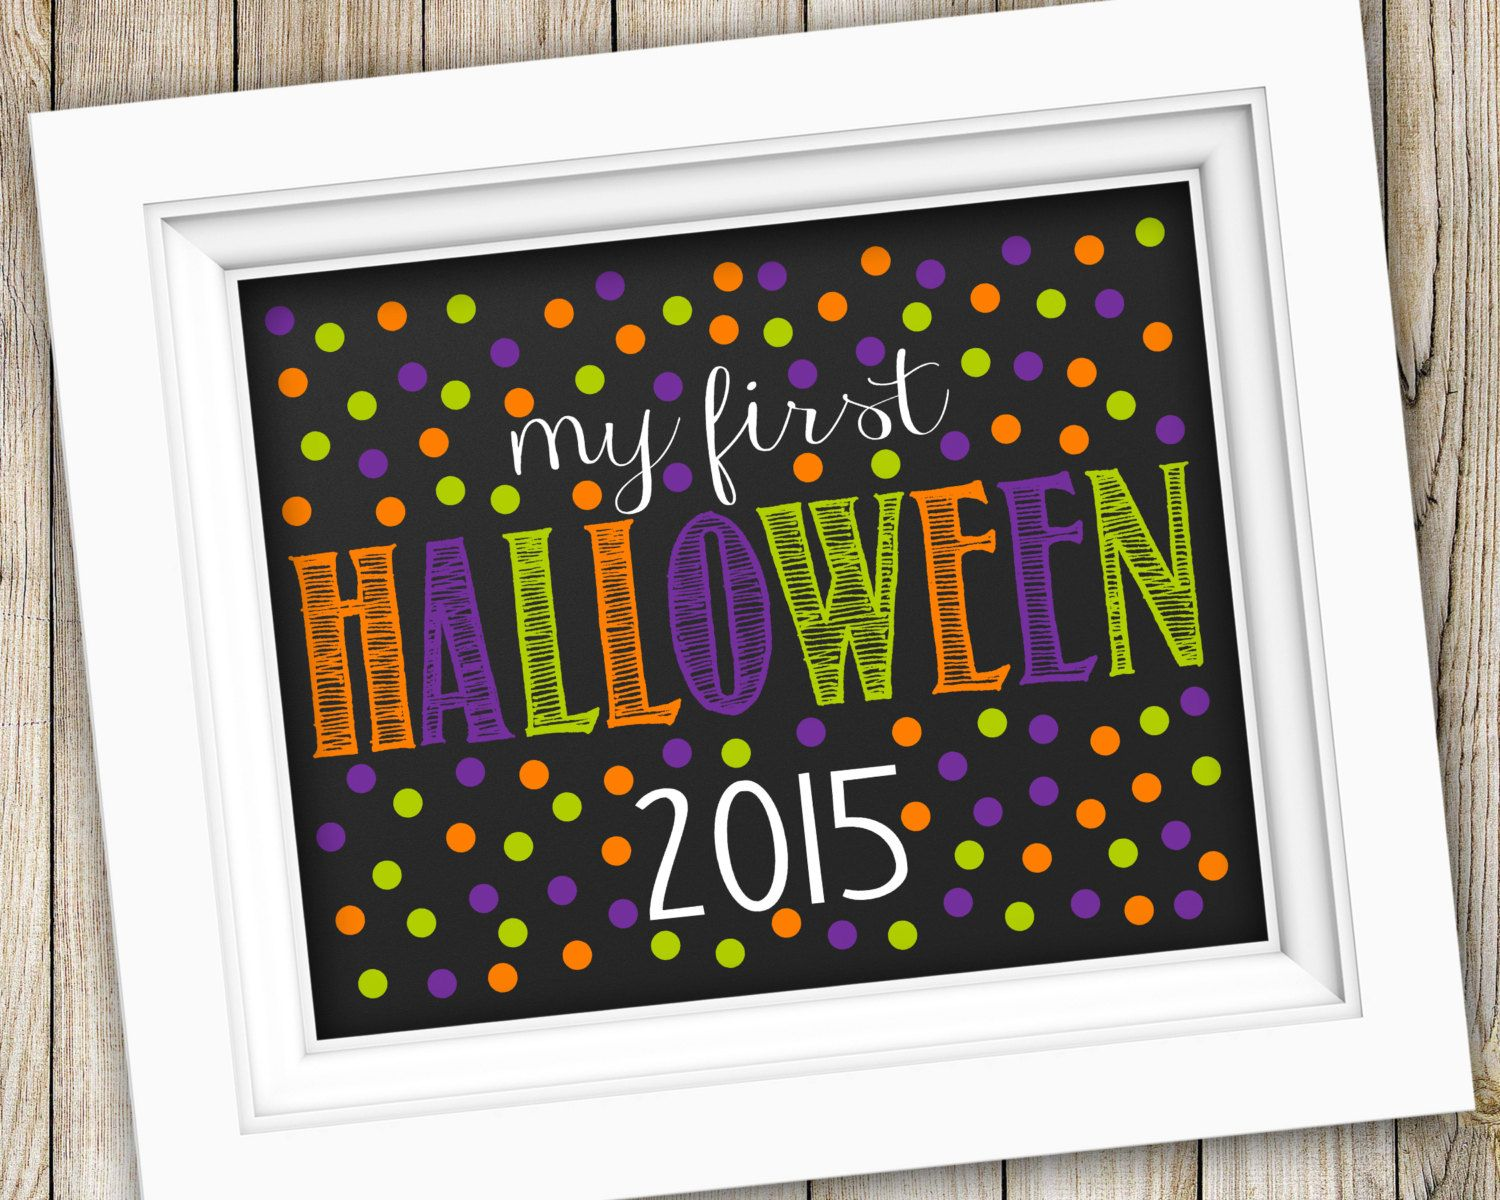 My First Halloween Sign Instant Download ~ Baby's First Halloween Photo Prop ~ Printable Halloween Chalkboard Sign Poster Decoration Decor by SubwayStyle on Etsy